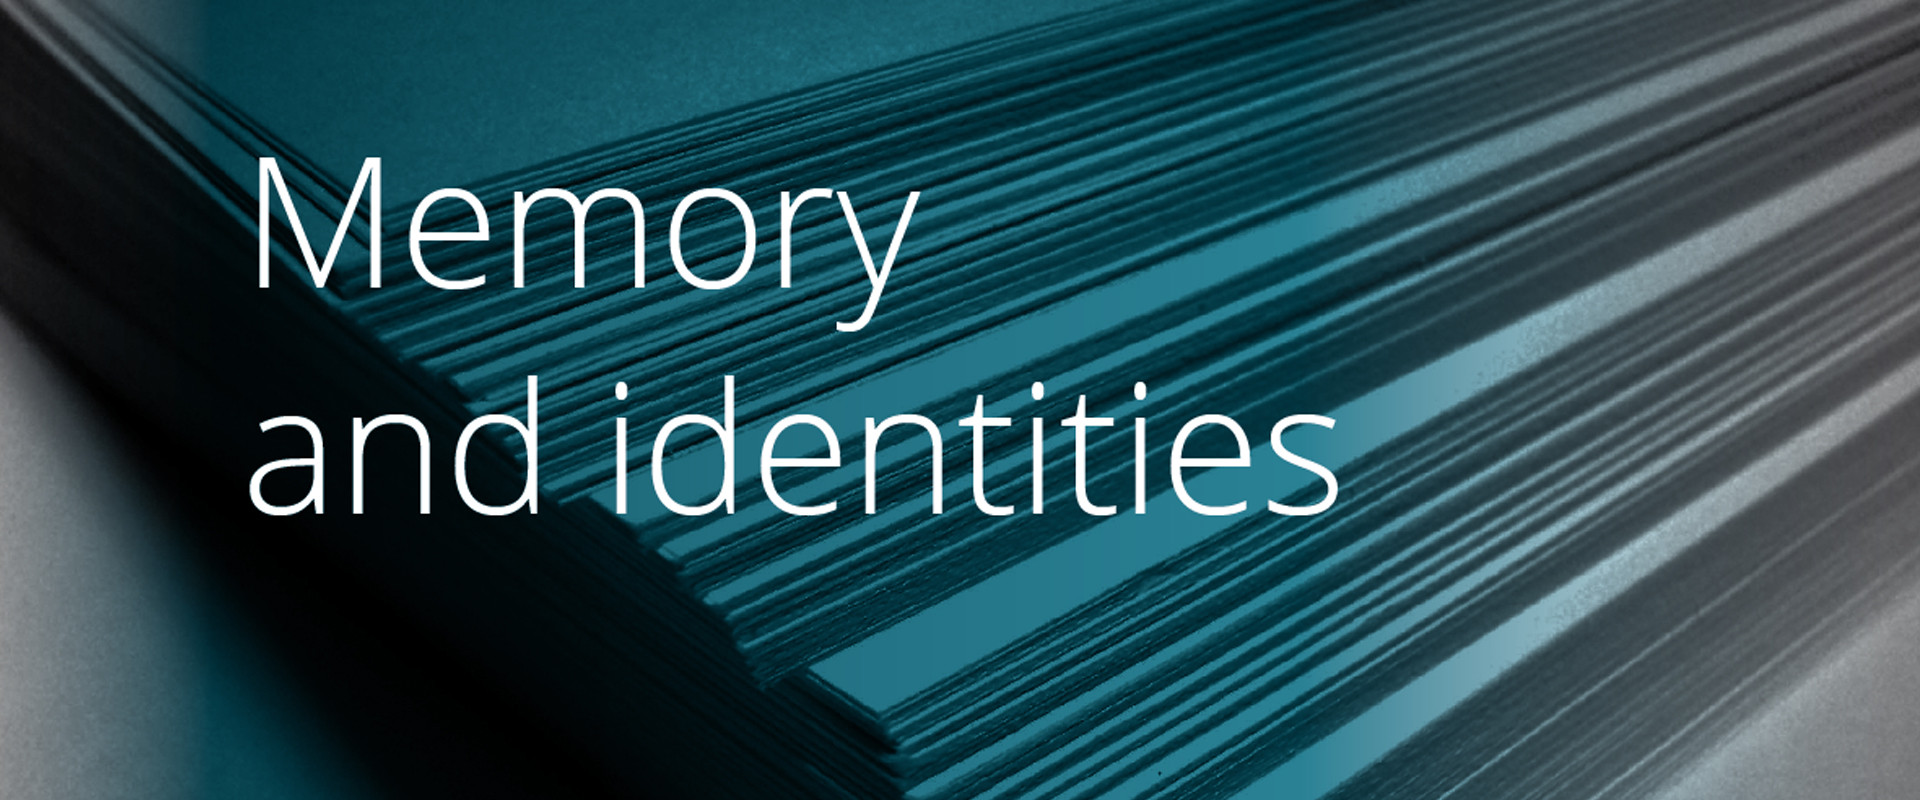 Memory and identities